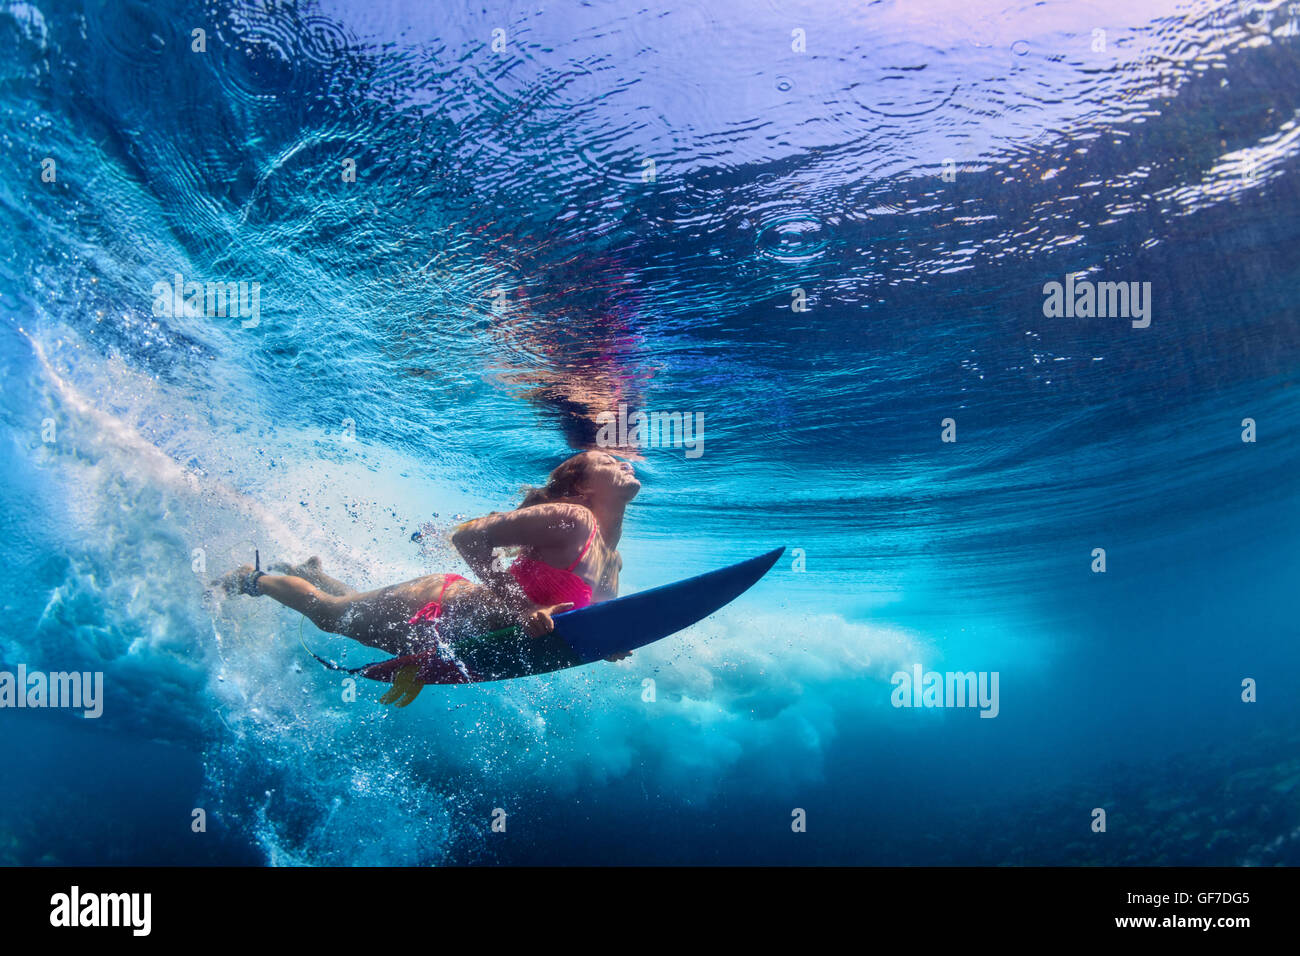 Young active girl wearing bikini in action - surfer with surf board dive underwater under big atlantic ocean wave. - Stock Image